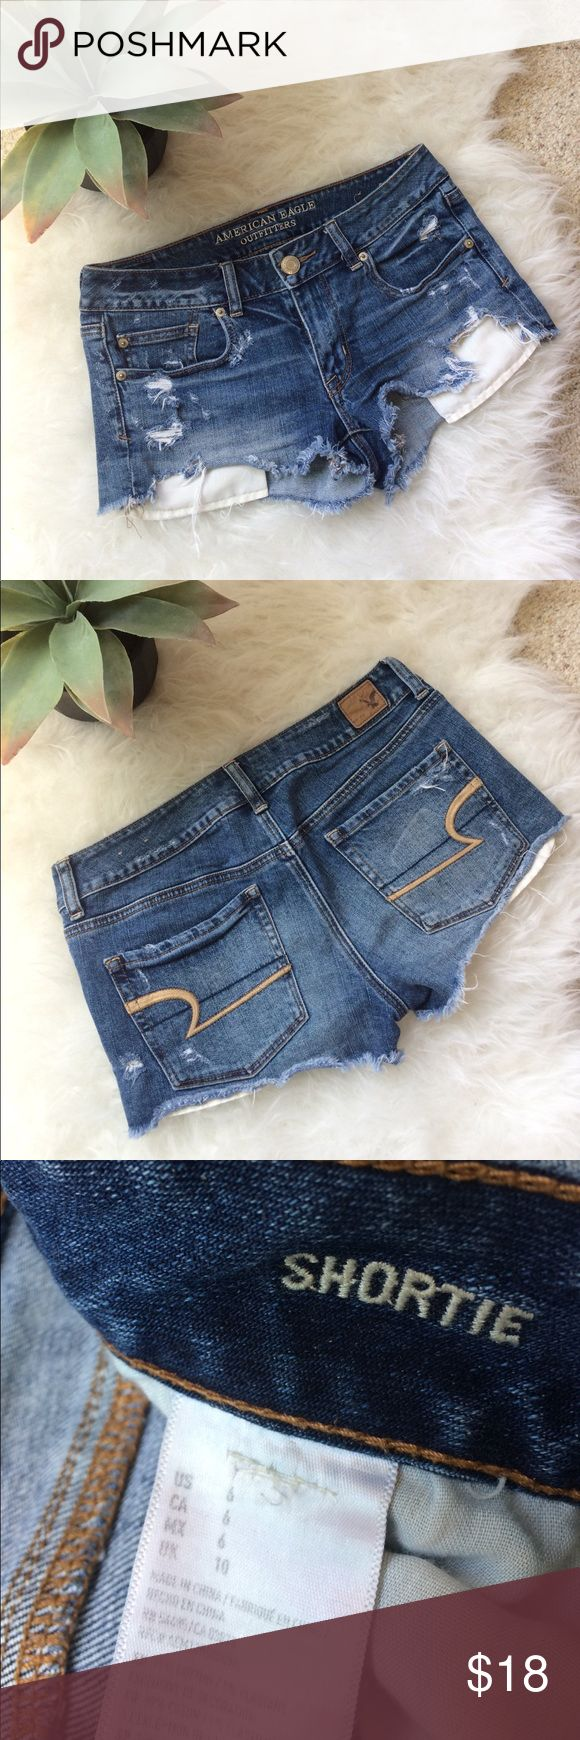 Price Drop! American Eagle Jean Shorts Mid-low rise jean shorts. Used but in great condition! Size 6, but runs a little small. American Eagle Outfitters Jeans